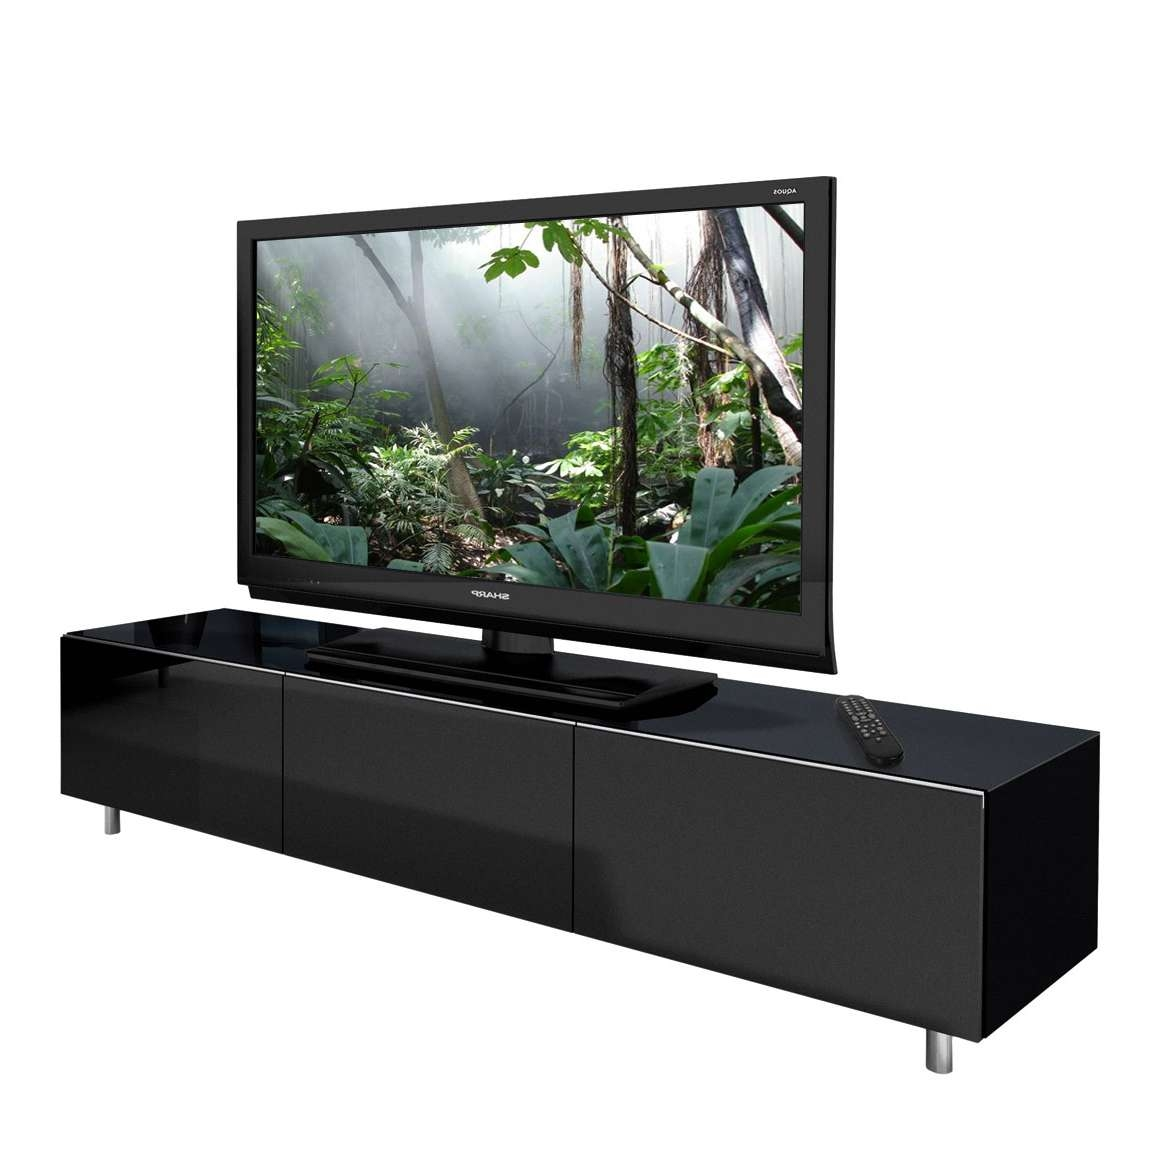 Spectral Just Racks Jrl1650s Gloss Black Tv Cabinet – Just Racks In Long Black Tv Stands (View 3 of 15)